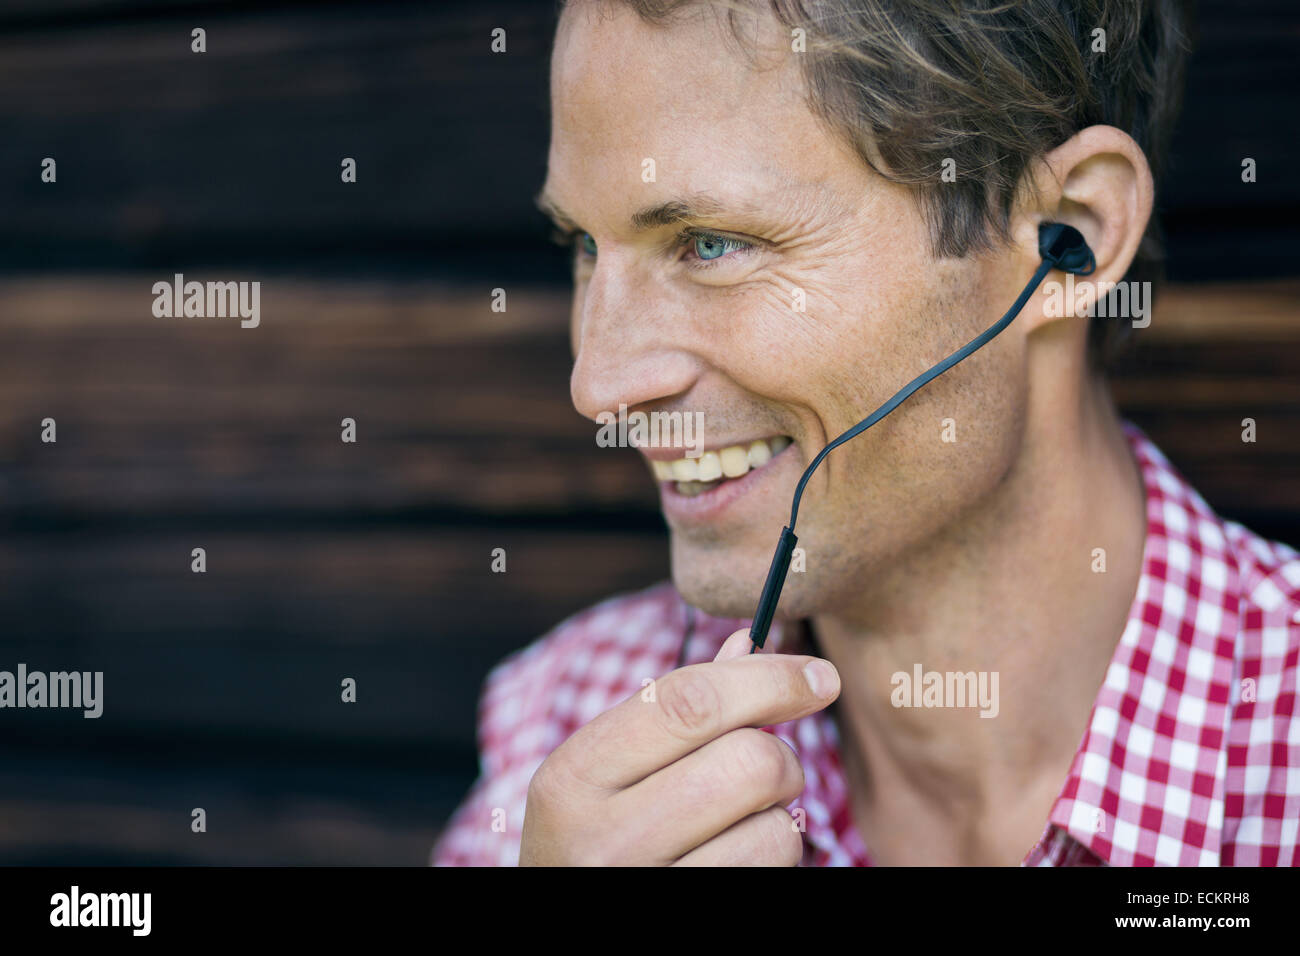 Happy man using hands-free device outside log cabin - Stock Image